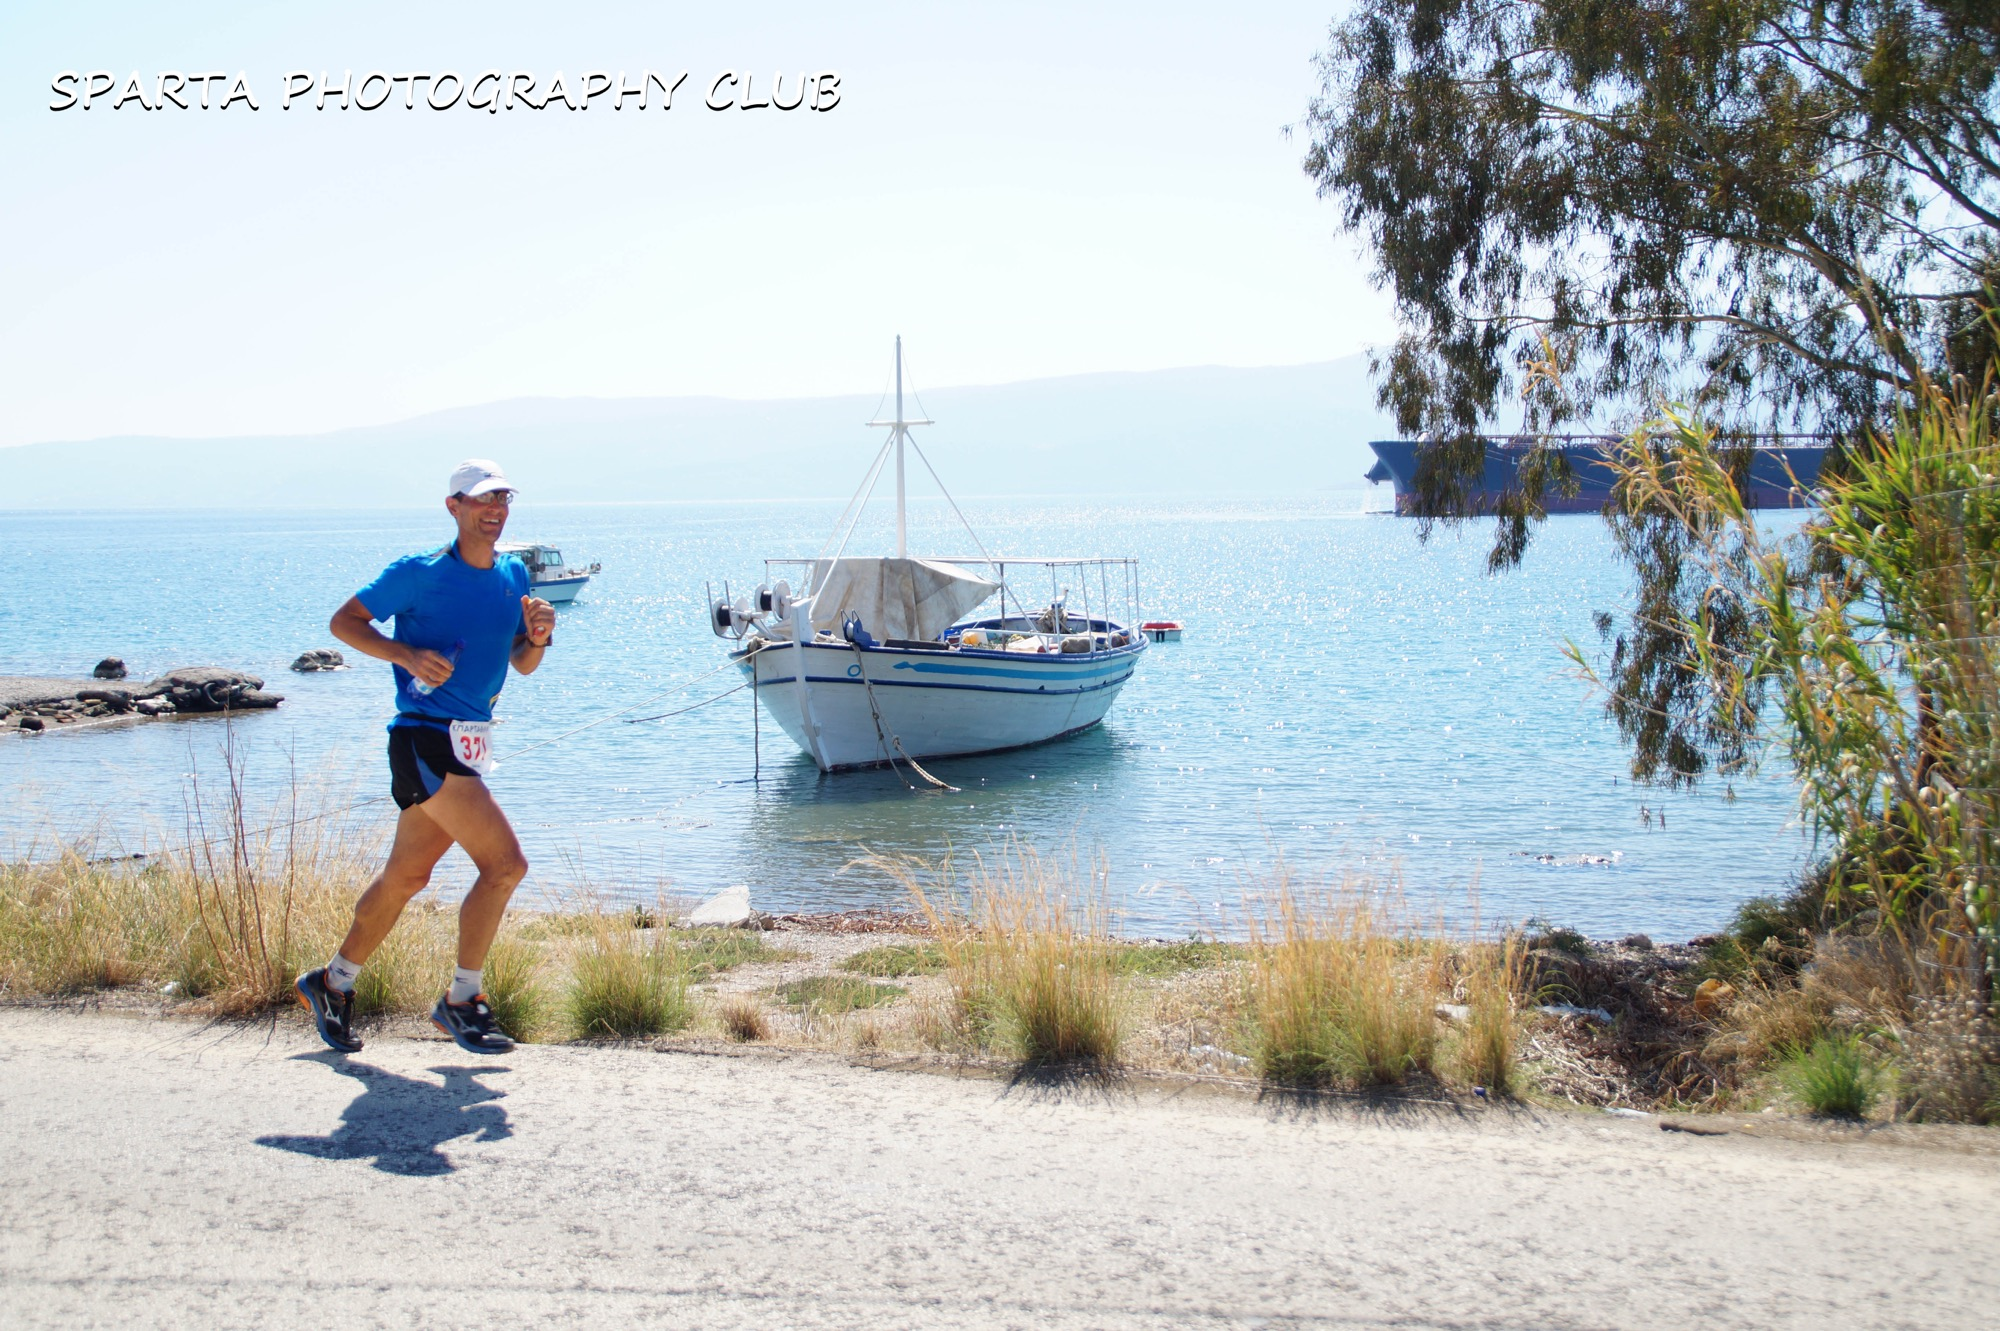 We ran along the beautiful coast, I wanted to dive in for a swim. Photo © Sparta Photography Club